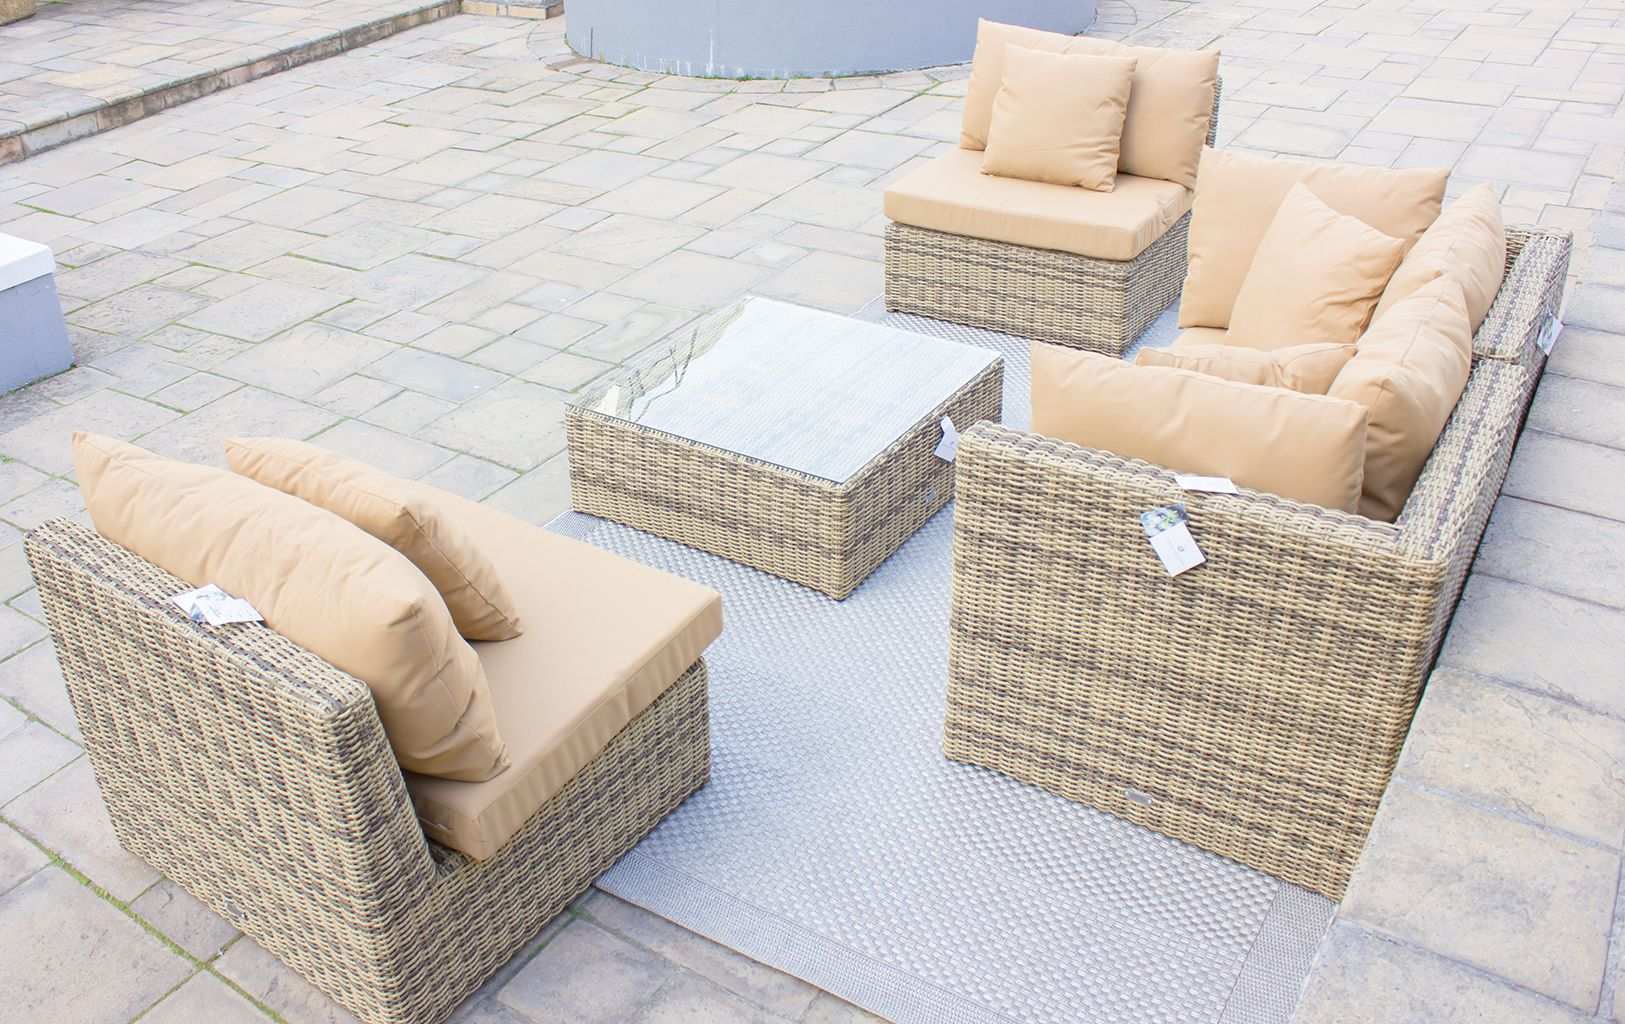 Affordable Patio Furniture South Africa  Wooden patio furniture